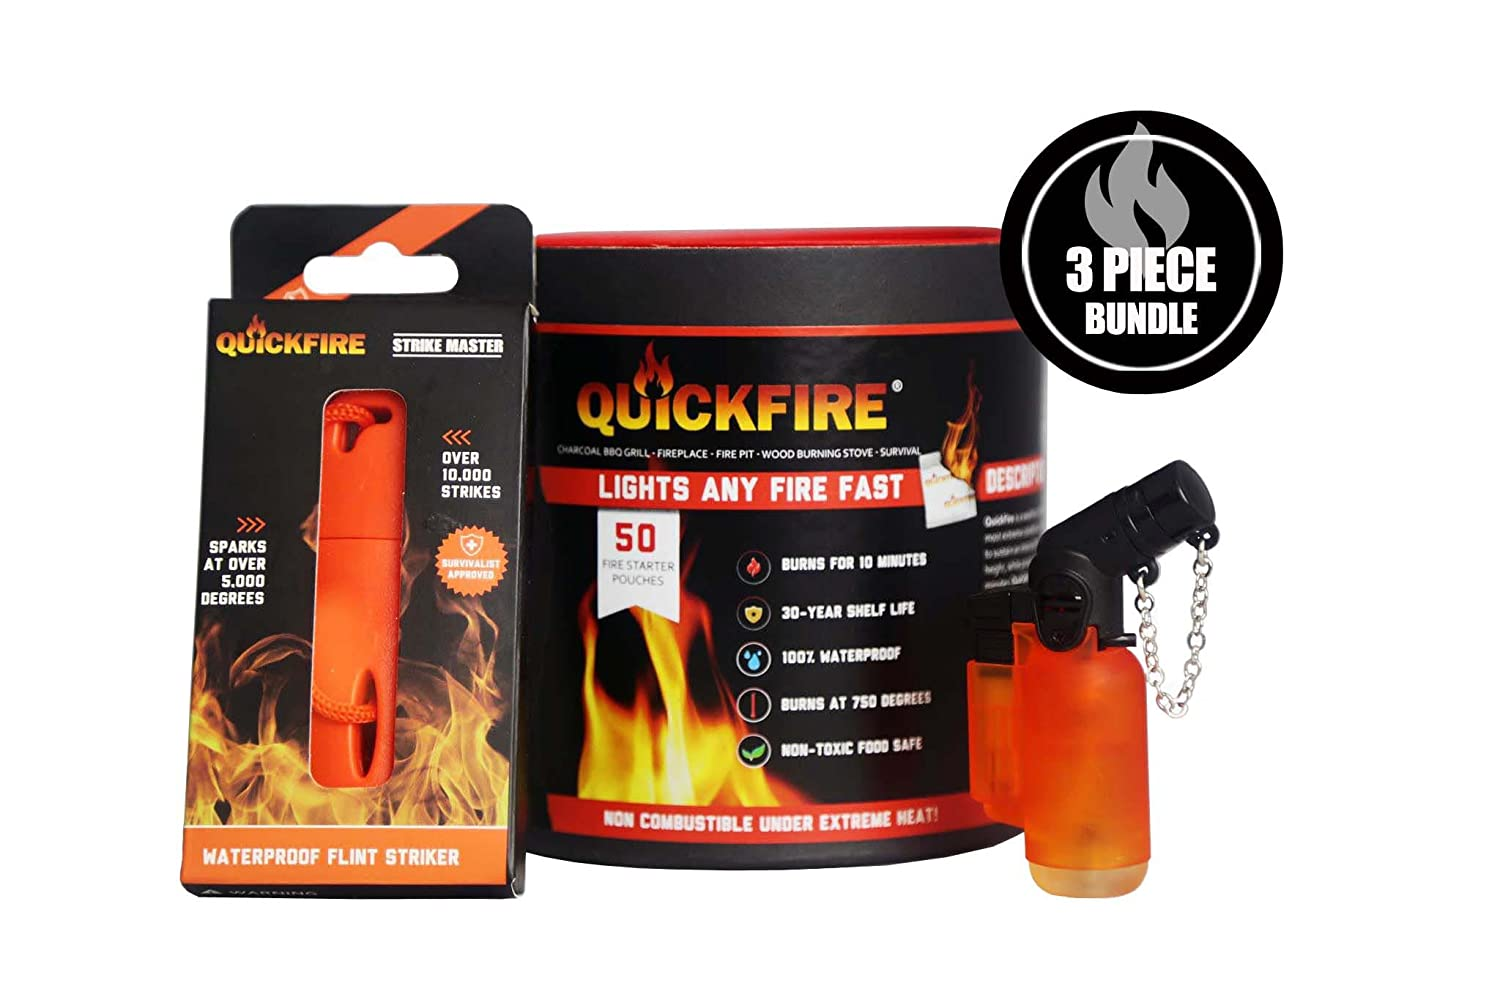 QuickFire (3 Piece Fire Bundle) Includes (x1) Angled Torch Lighter with Butane, (x1) Emergency Flint Starter & (x50) Pack Canister of Non-Toxic & Waterproof Fire Starters